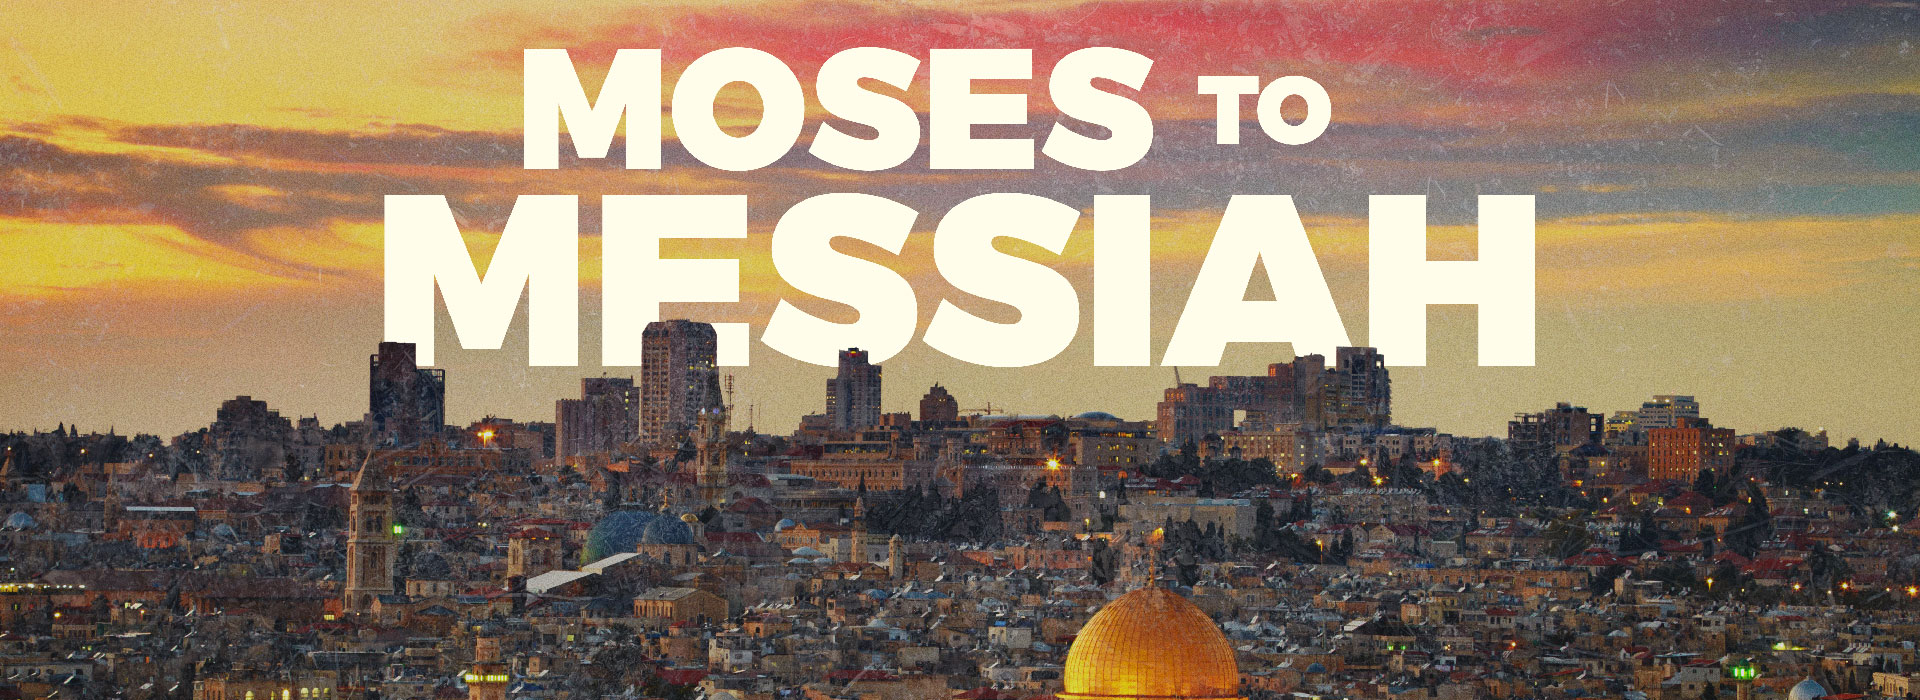 moses to messiah-01